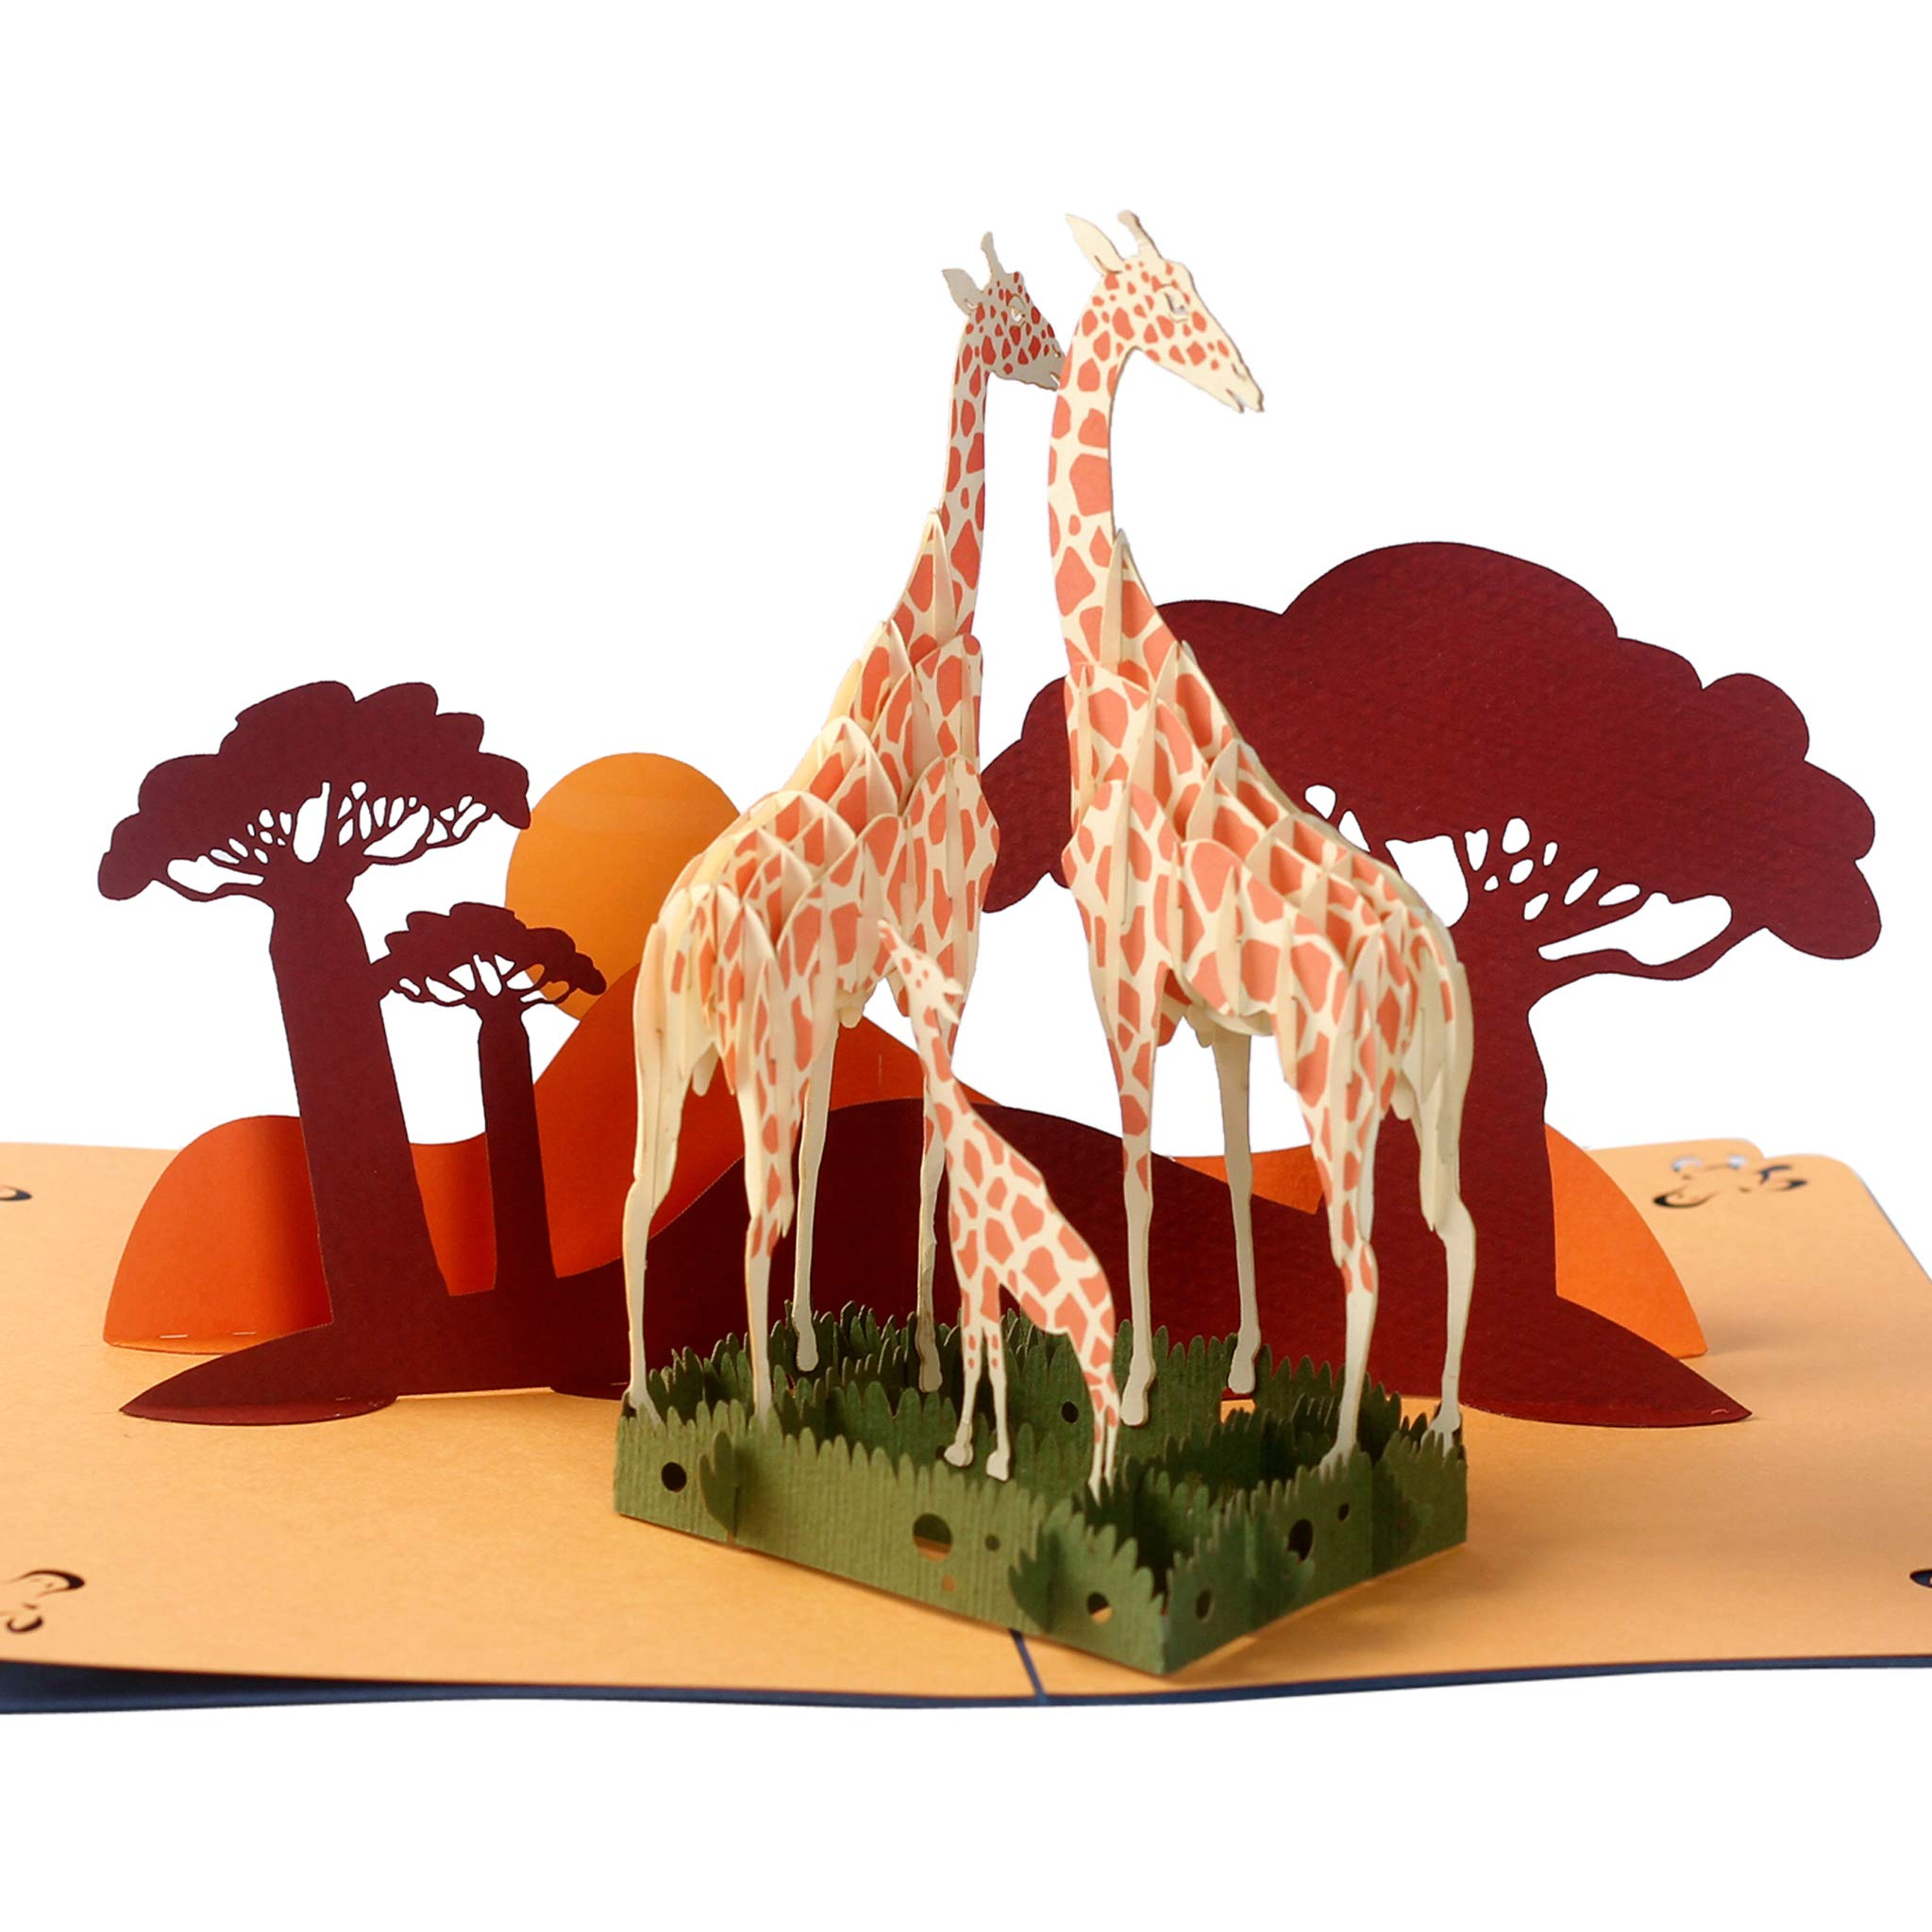 CUTEPOPUP GIRAFFE FAMILY Popup Greeting Cards, impressive handmade, idea gift for any Occasions, Mother's Day, Farther's day, Birthday, with white-shining cards holder…for animal lovers.